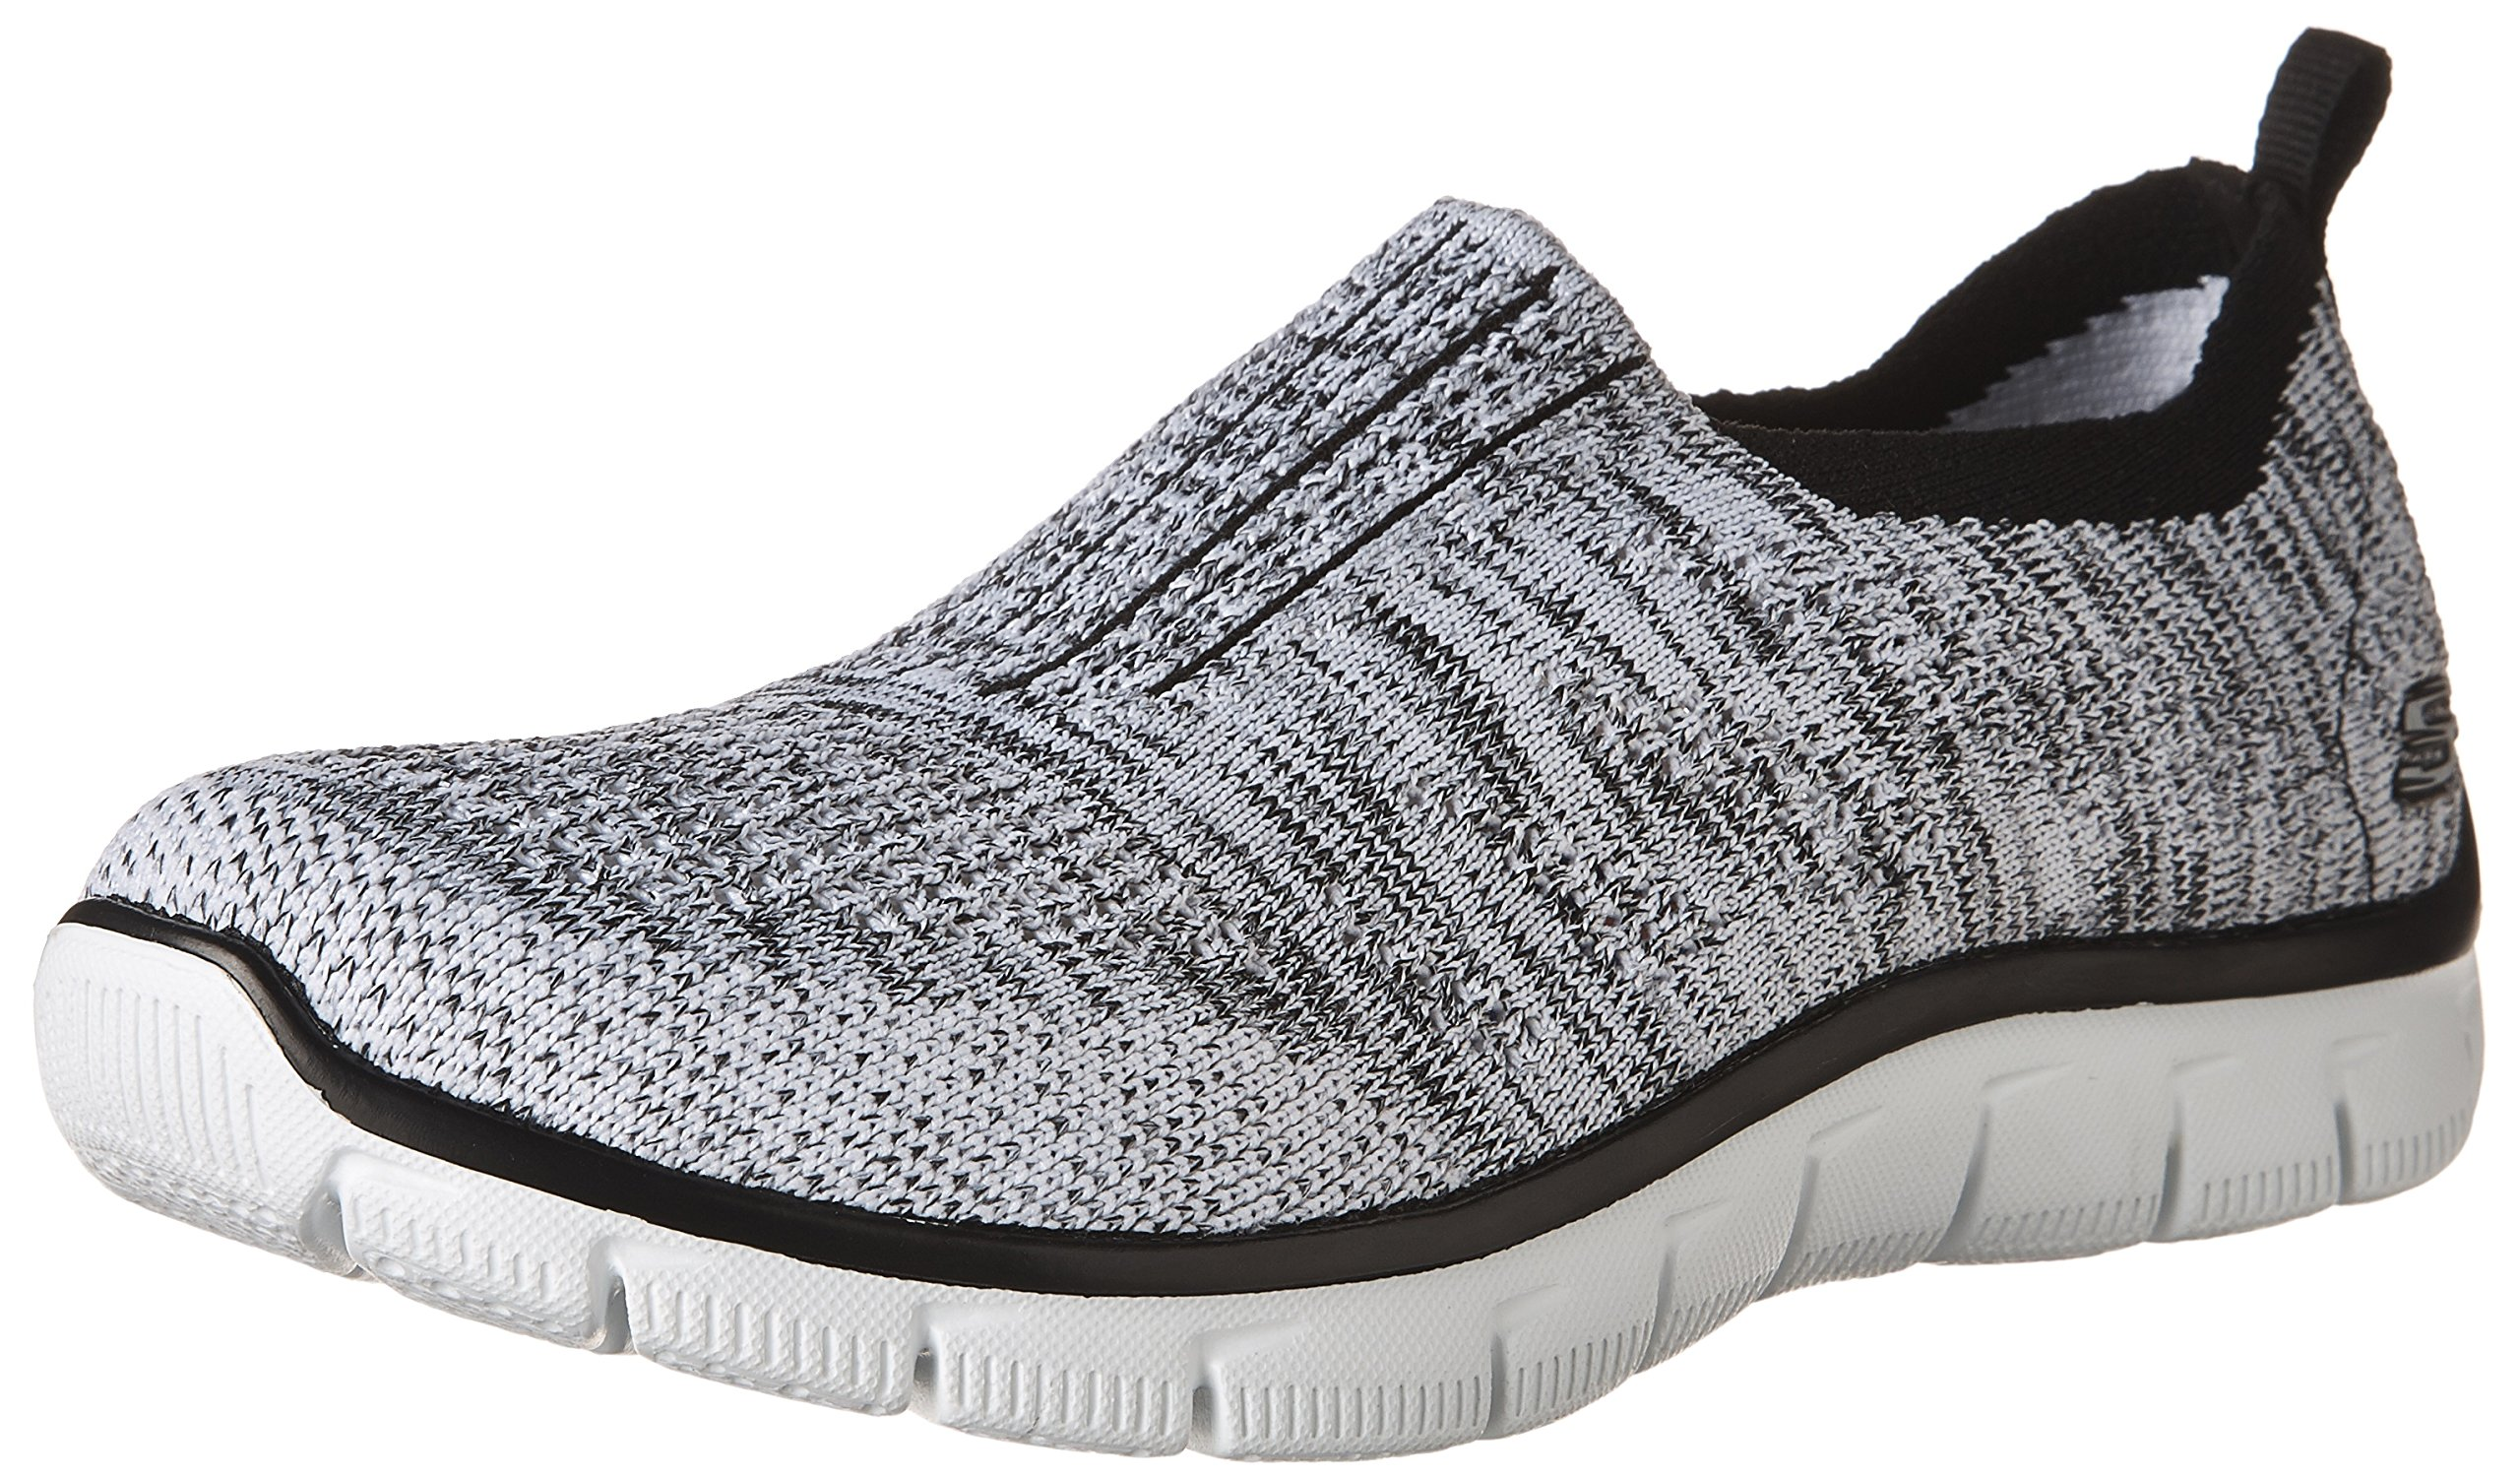 3d1118fec530 Galleon - Skechers Empire Inside Look Womens Slip On Sneakers White Black  6.5